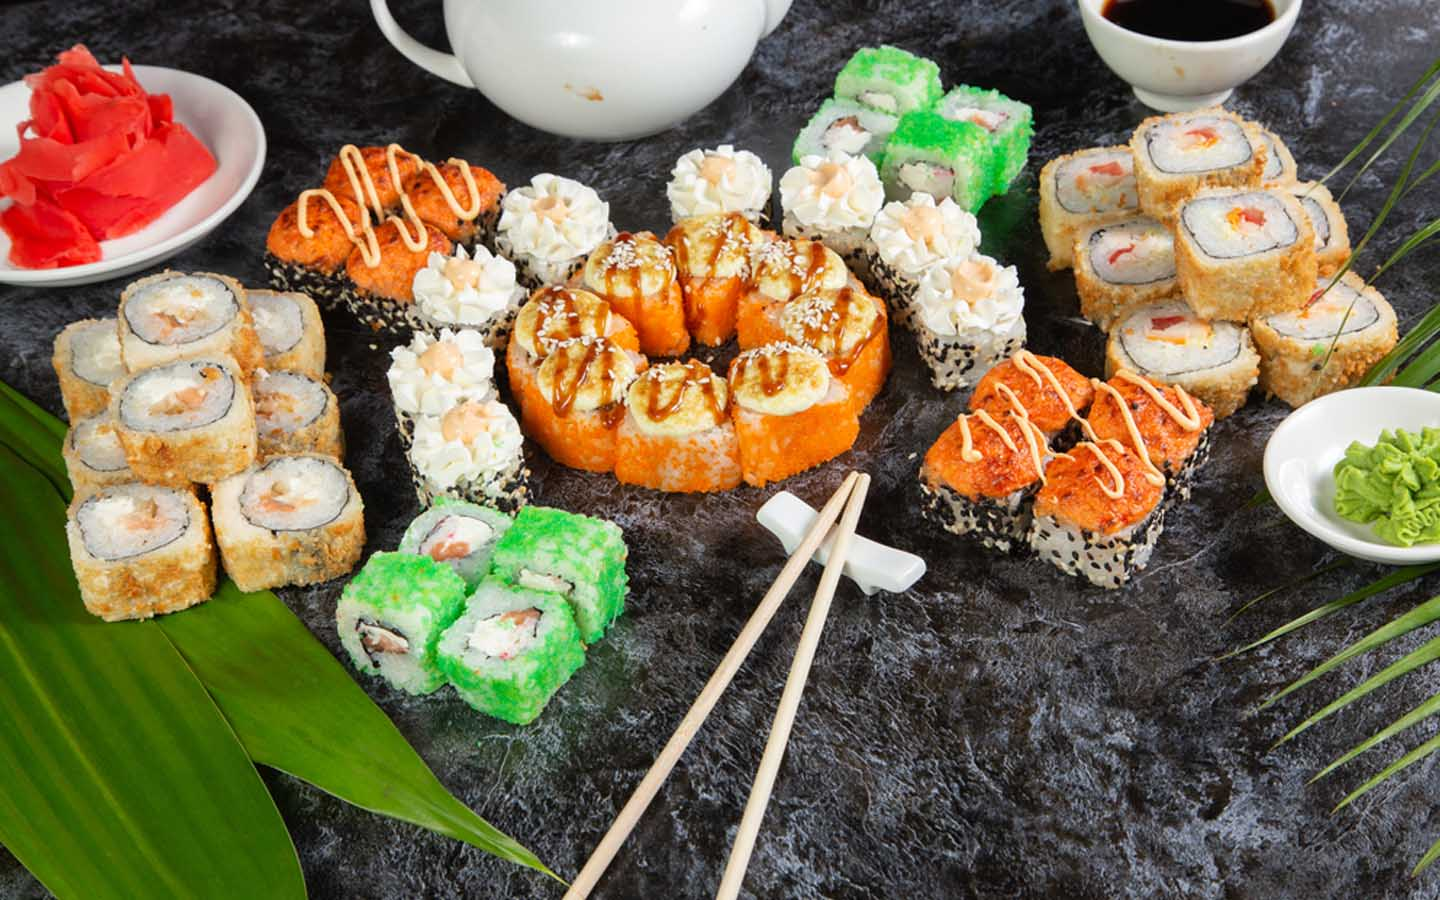 Wide platter of sushi and rolls